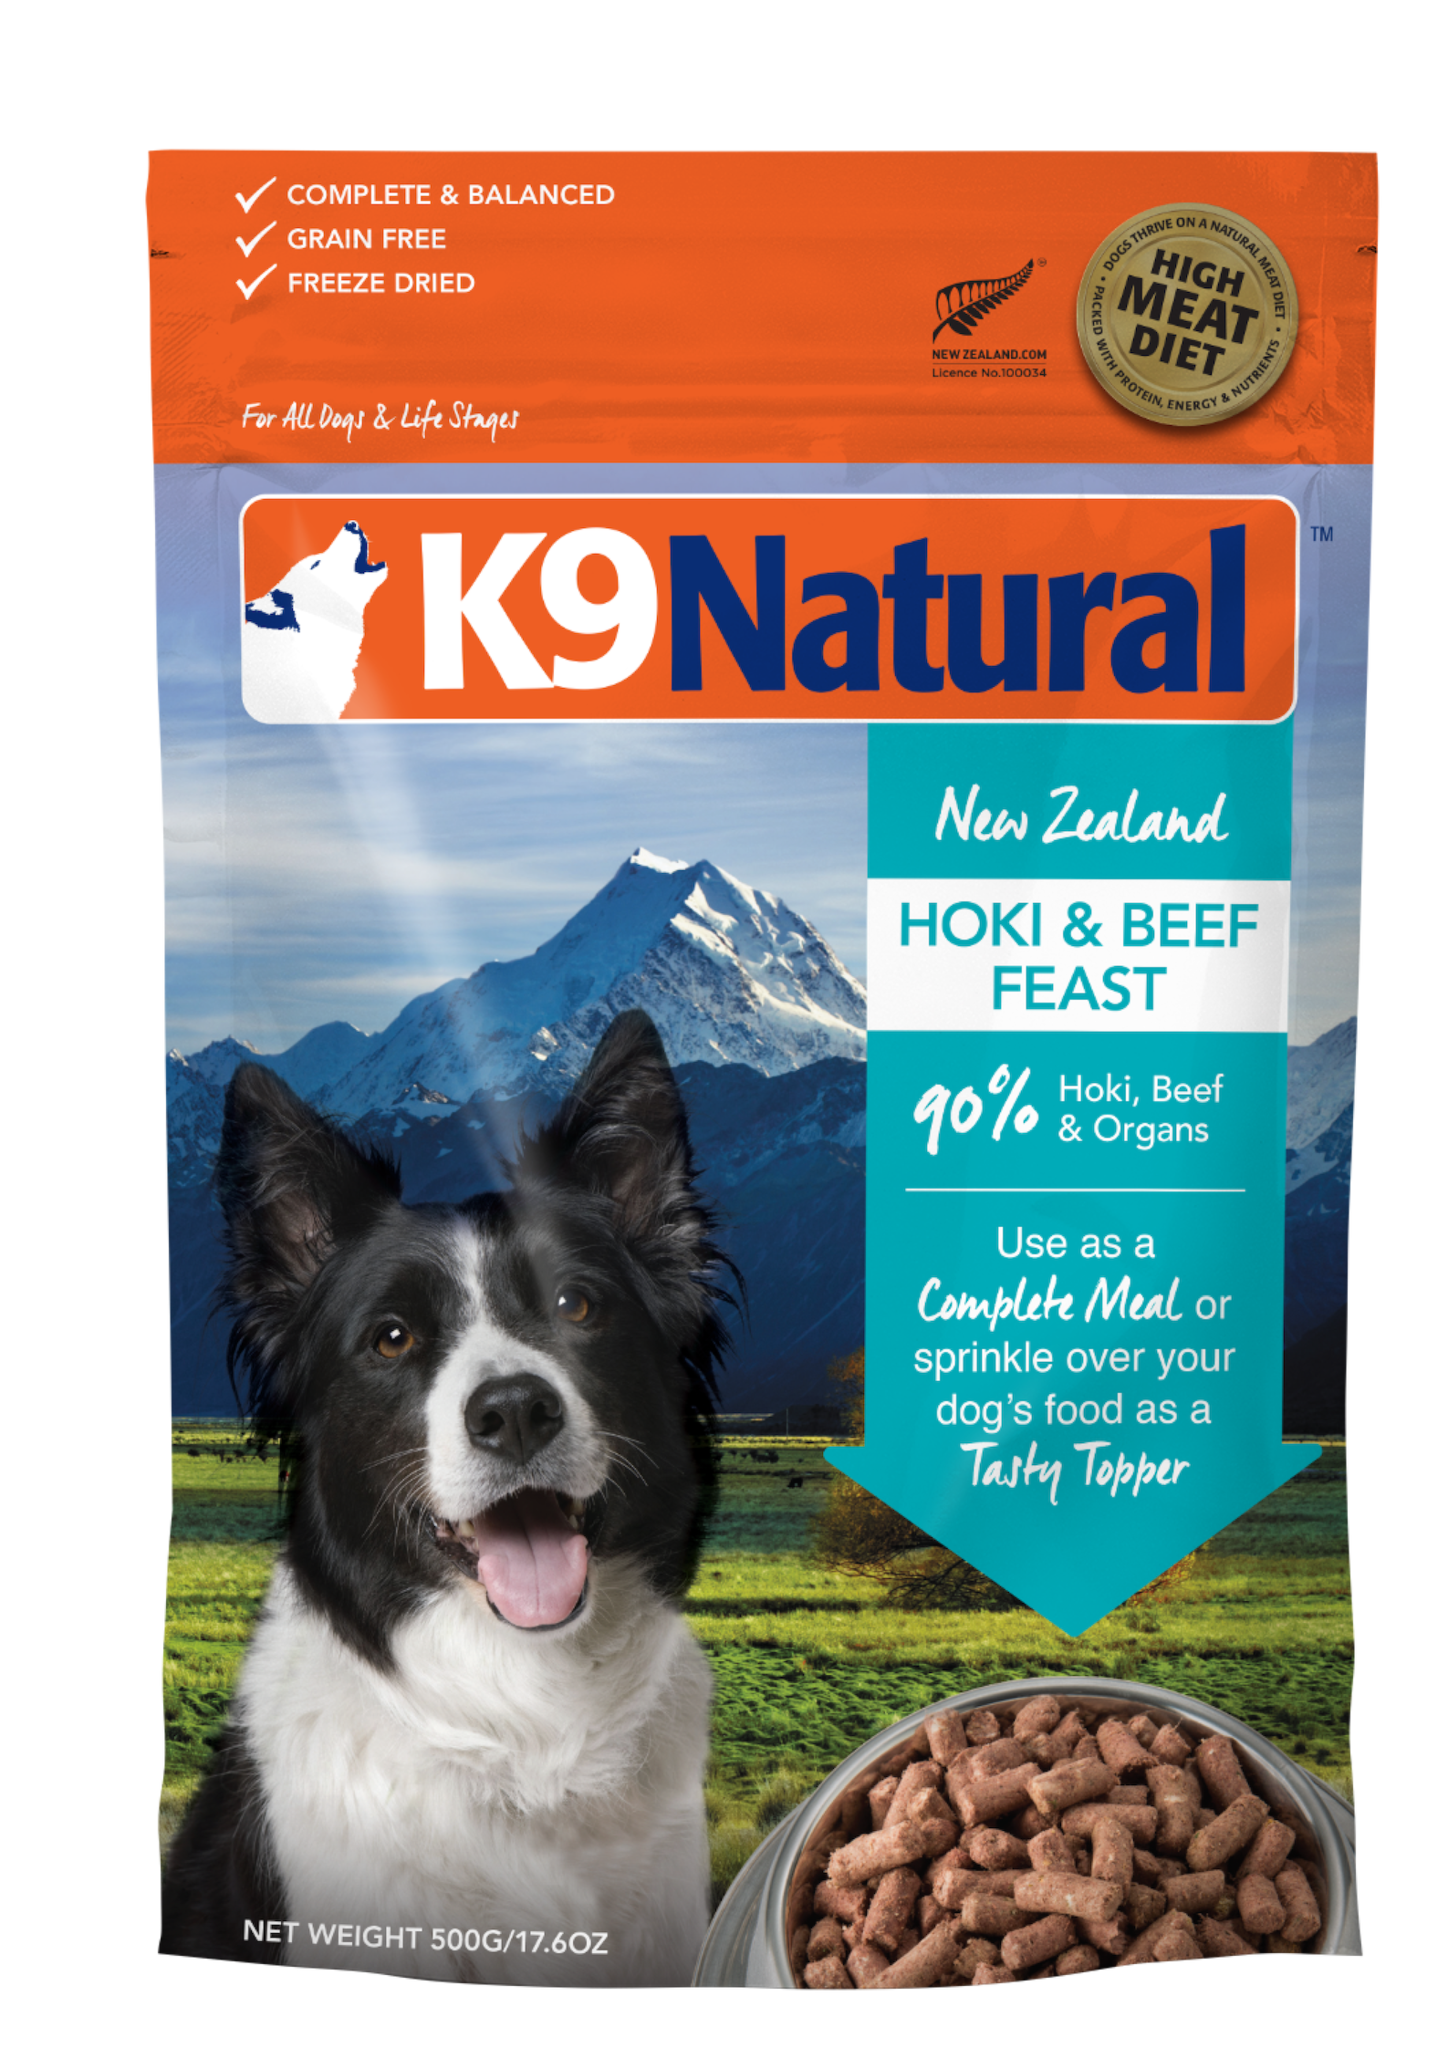 K9 Natural K9 Natural Freeze Dried Hoki & Beef Feast Dog Food 17.6oz